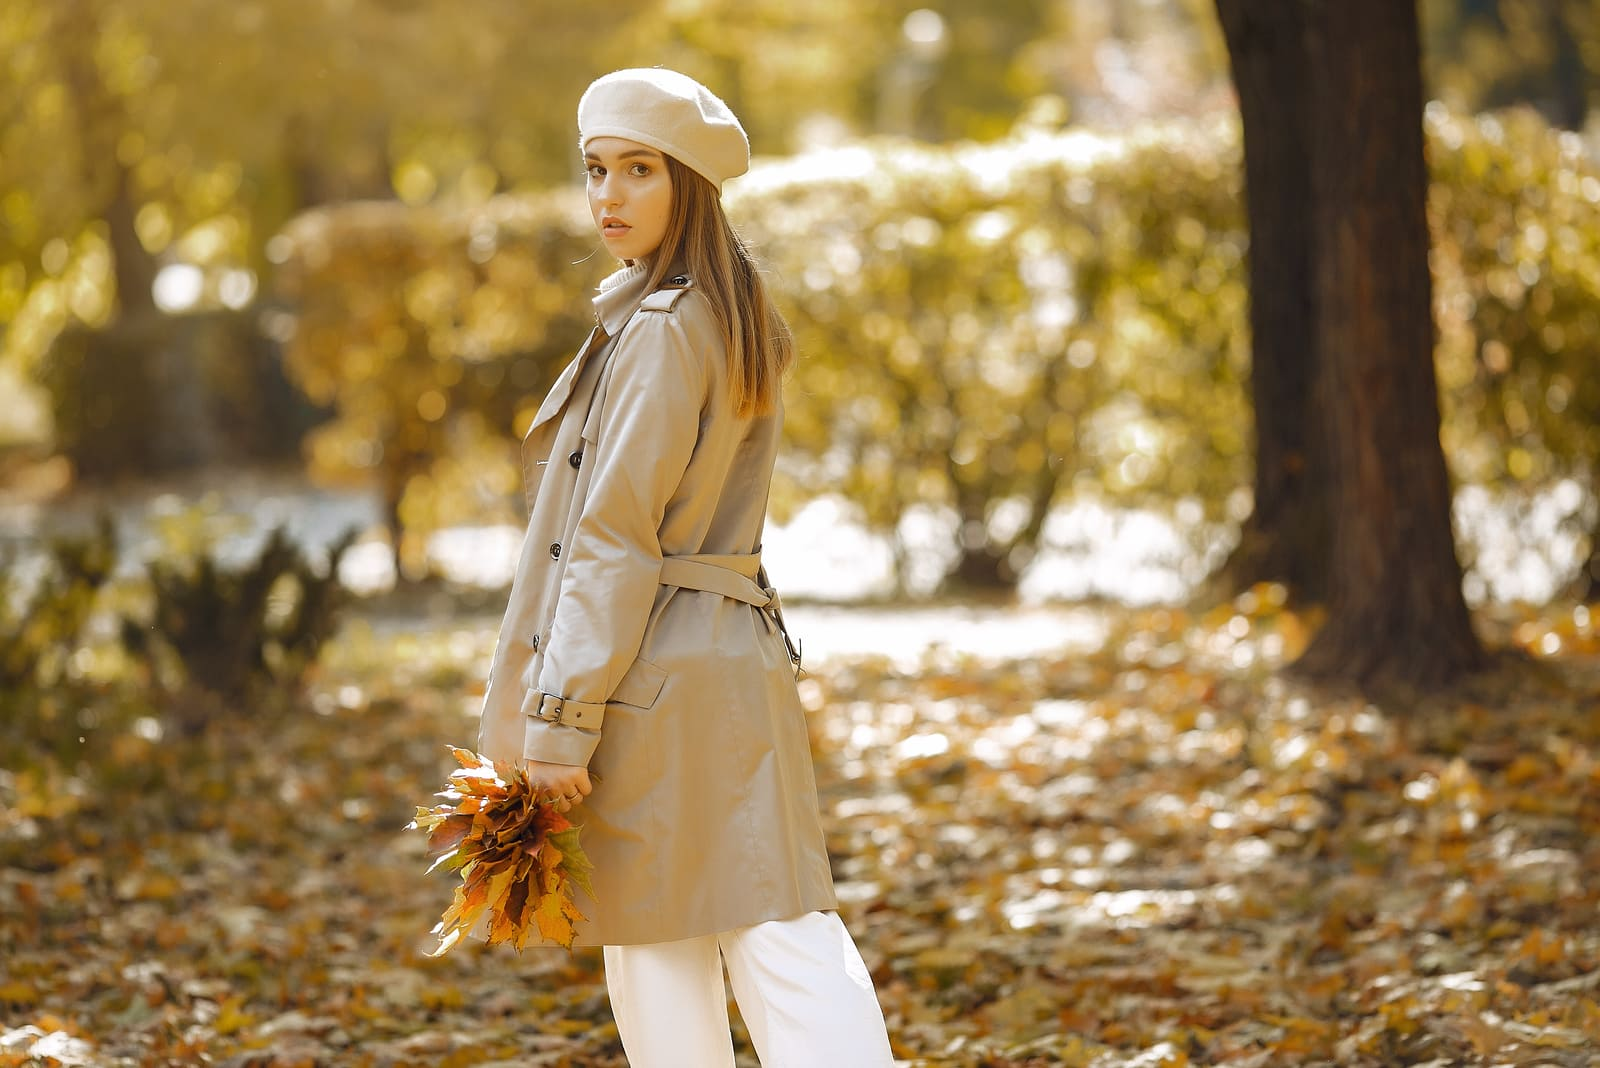 young woman holding leaves in park